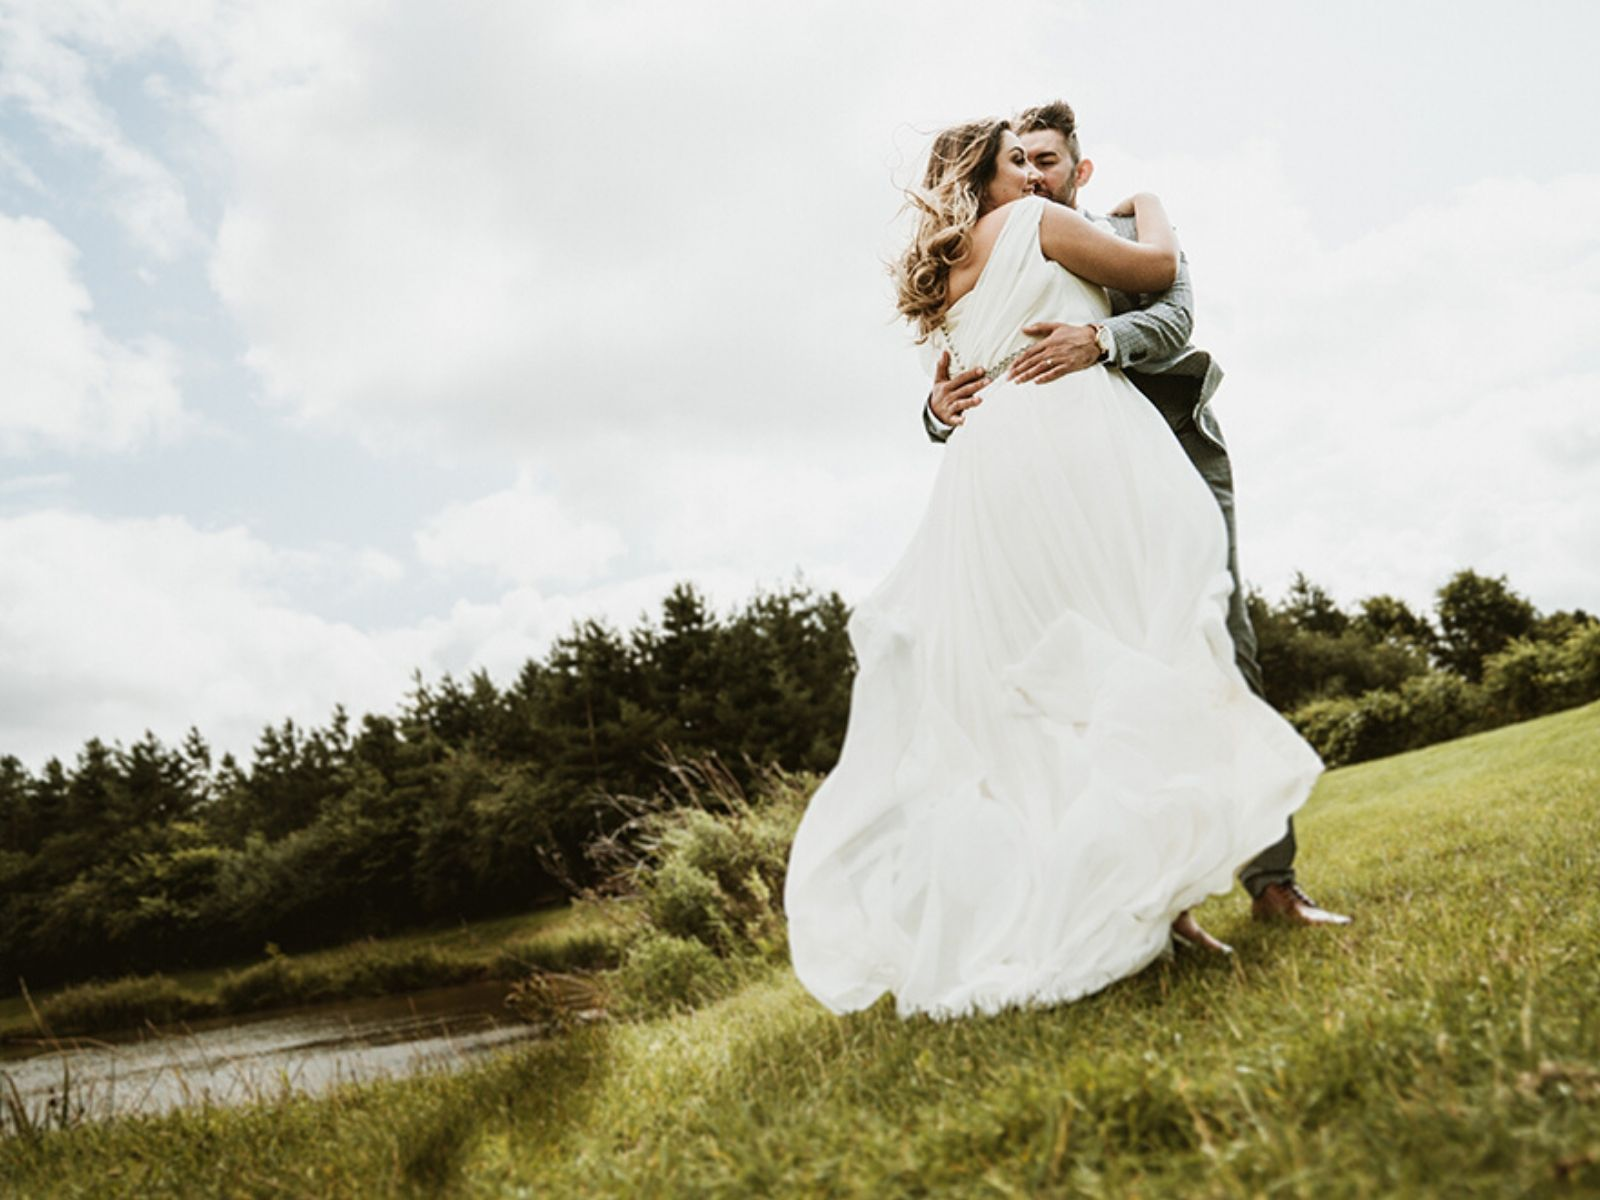 Aimee and Joe hugging at their outdoor wedding photography shoot